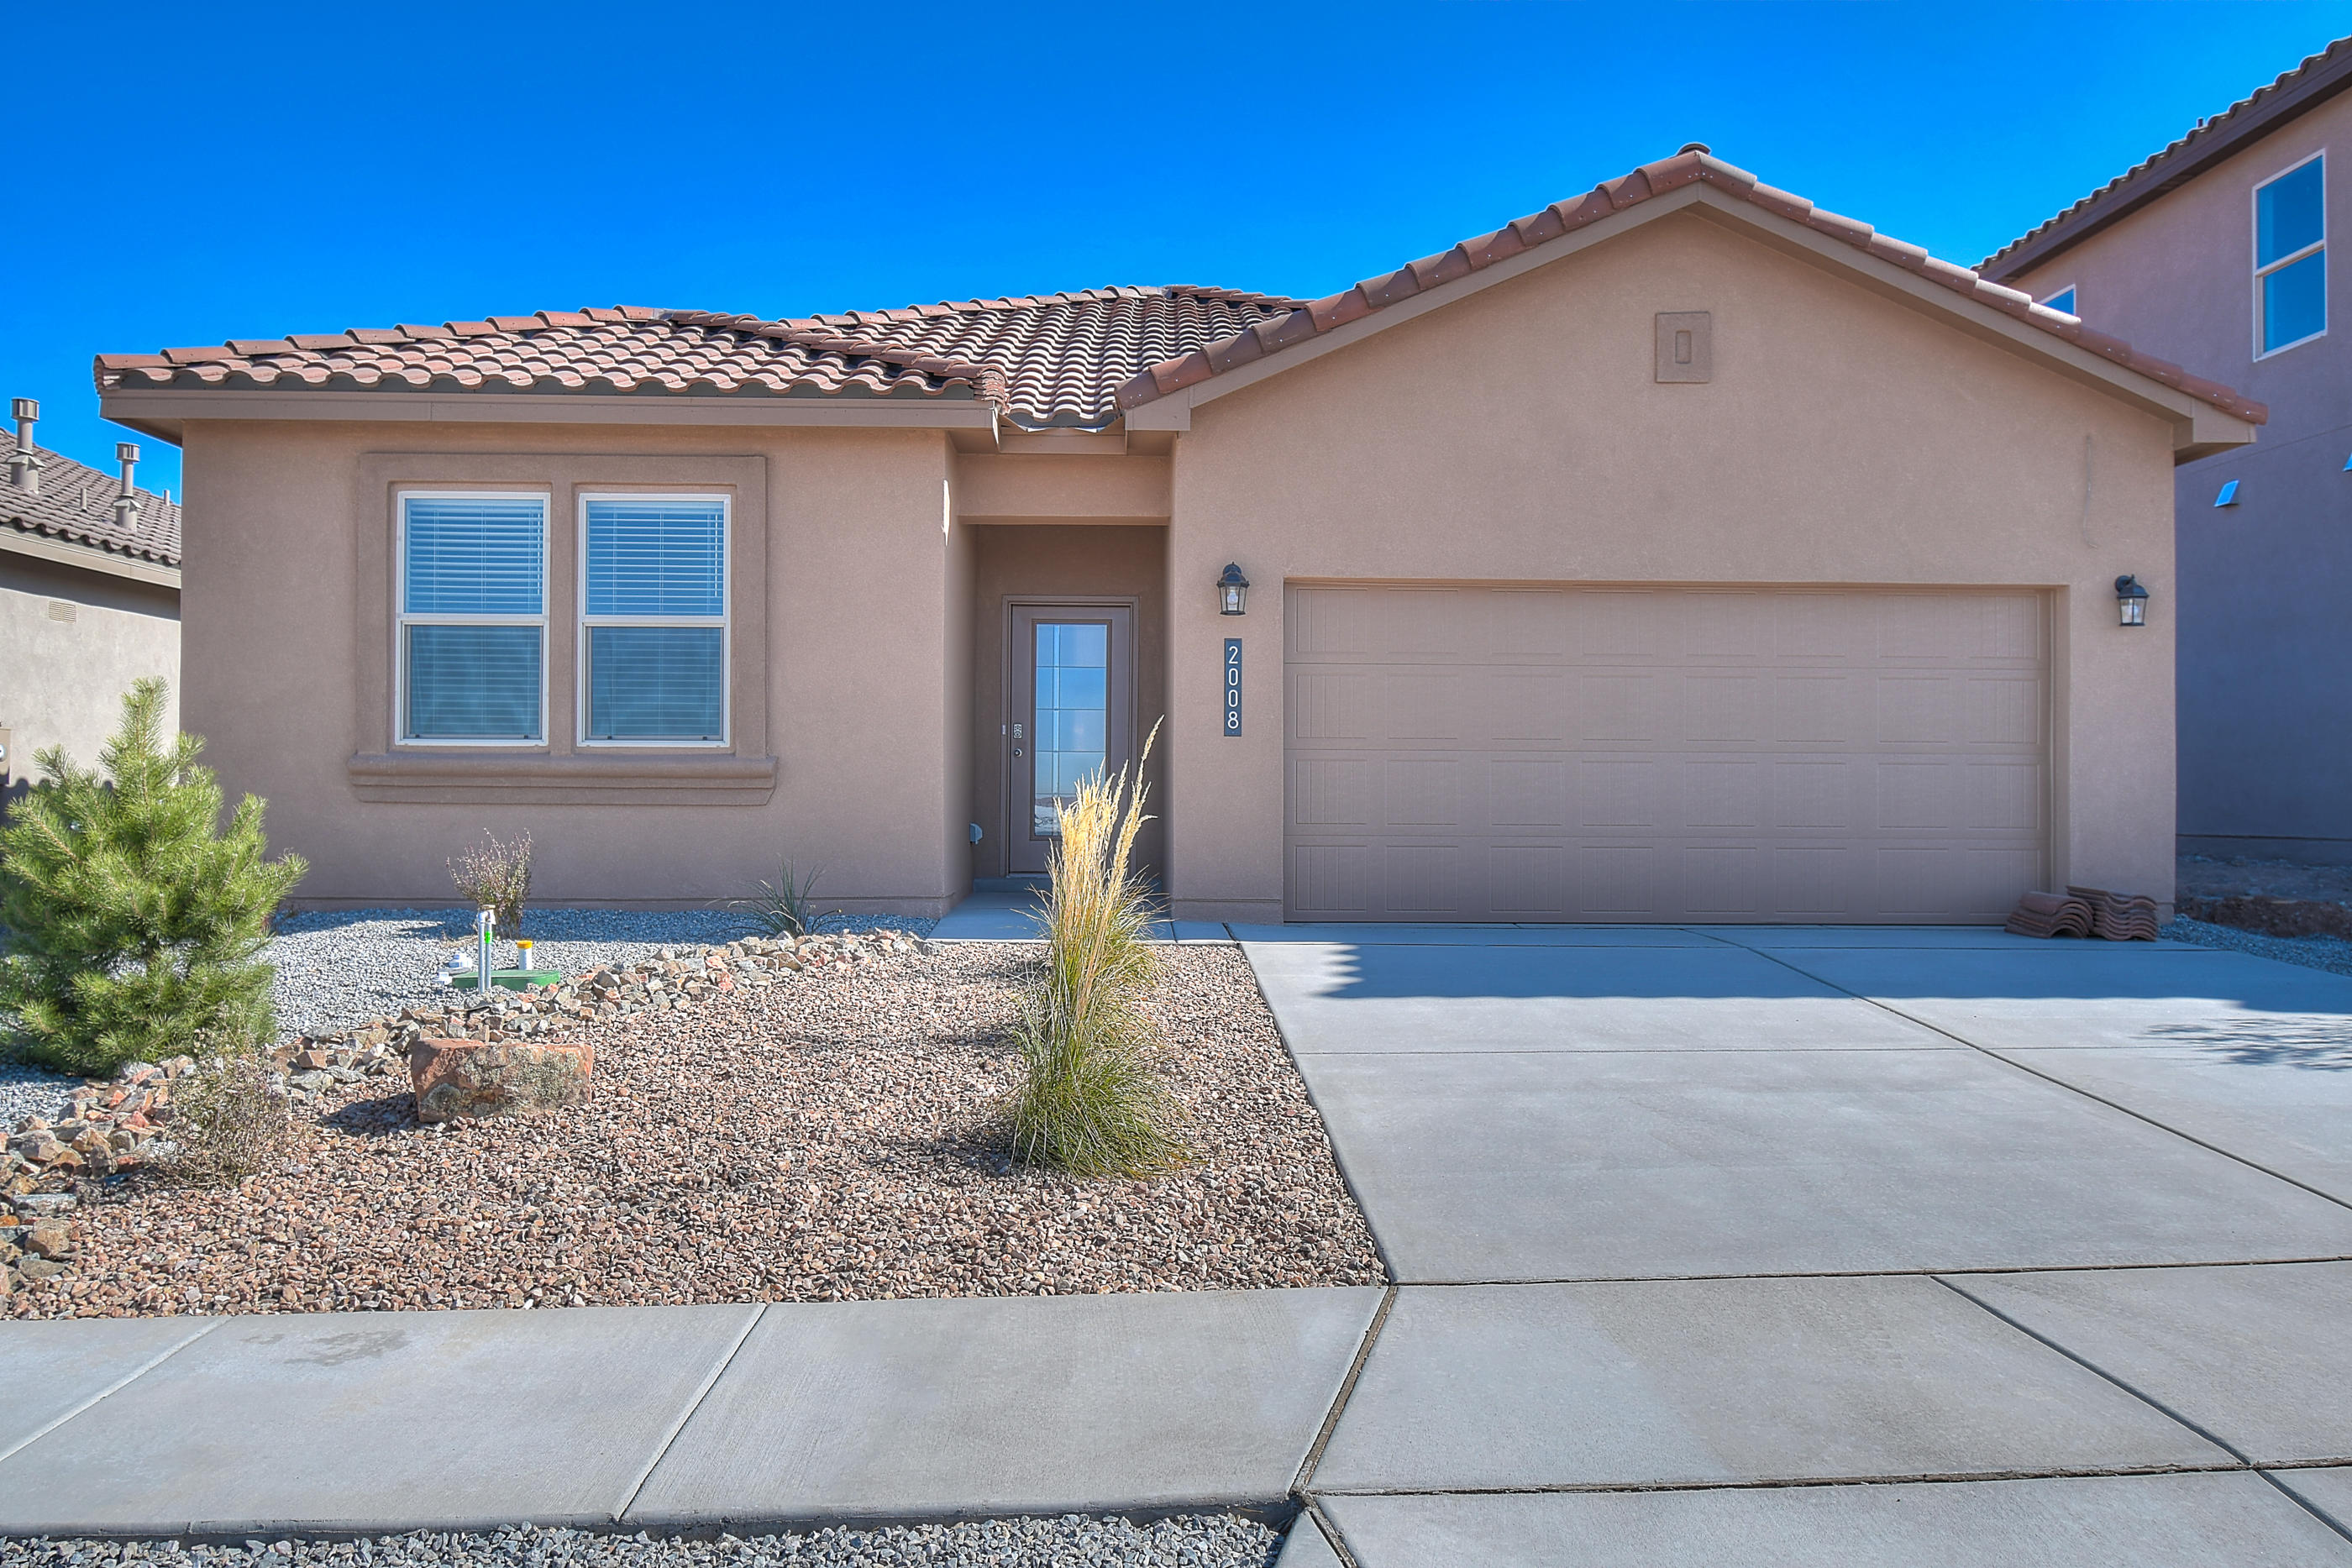 One of the LAST opportunities to own a NEW home here in Volterra!  This beautiful NEW HOME in the Volterra IV community in SE ABQ! This energy efficient home is CURRENTLY BEING BUILT. Our incredible 1-story Jordyn model offers a bright and open kitchen / living area. Besides plenty of standard features like granite kitchen countertop and tile flooring, the STAIN-STEEL KITCHEN, FRAMELESS HEAVY GLASS WALK IN SHOWER AND PREMIUM INTERIOR PACKAGE were expertly planned by our designer! Primary bedroom is secluded from the remaining three bedrooms for maximum privacy.  Call today to set up a showing of our beautiful model homes or to learn more about our Volterra IV community!